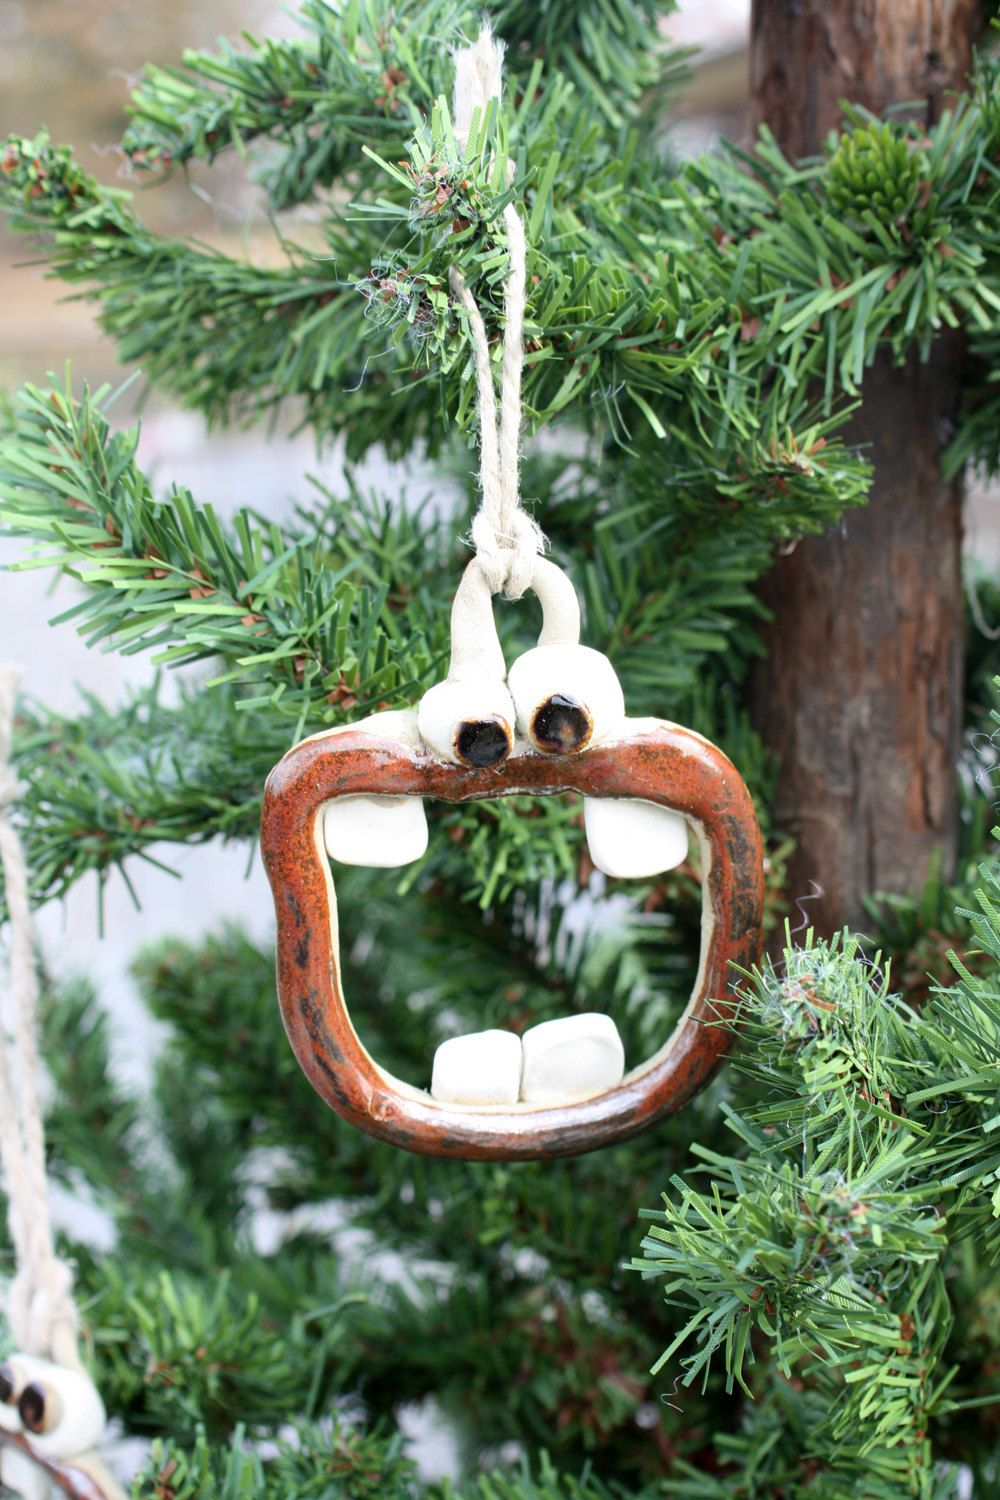 Christmas Tree Ornament All I Want For Christmas Is My Two Front Teeth Singing O Fun Little Orn Christmas Tree Ornaments Unique Christmas Ornaments Christmas